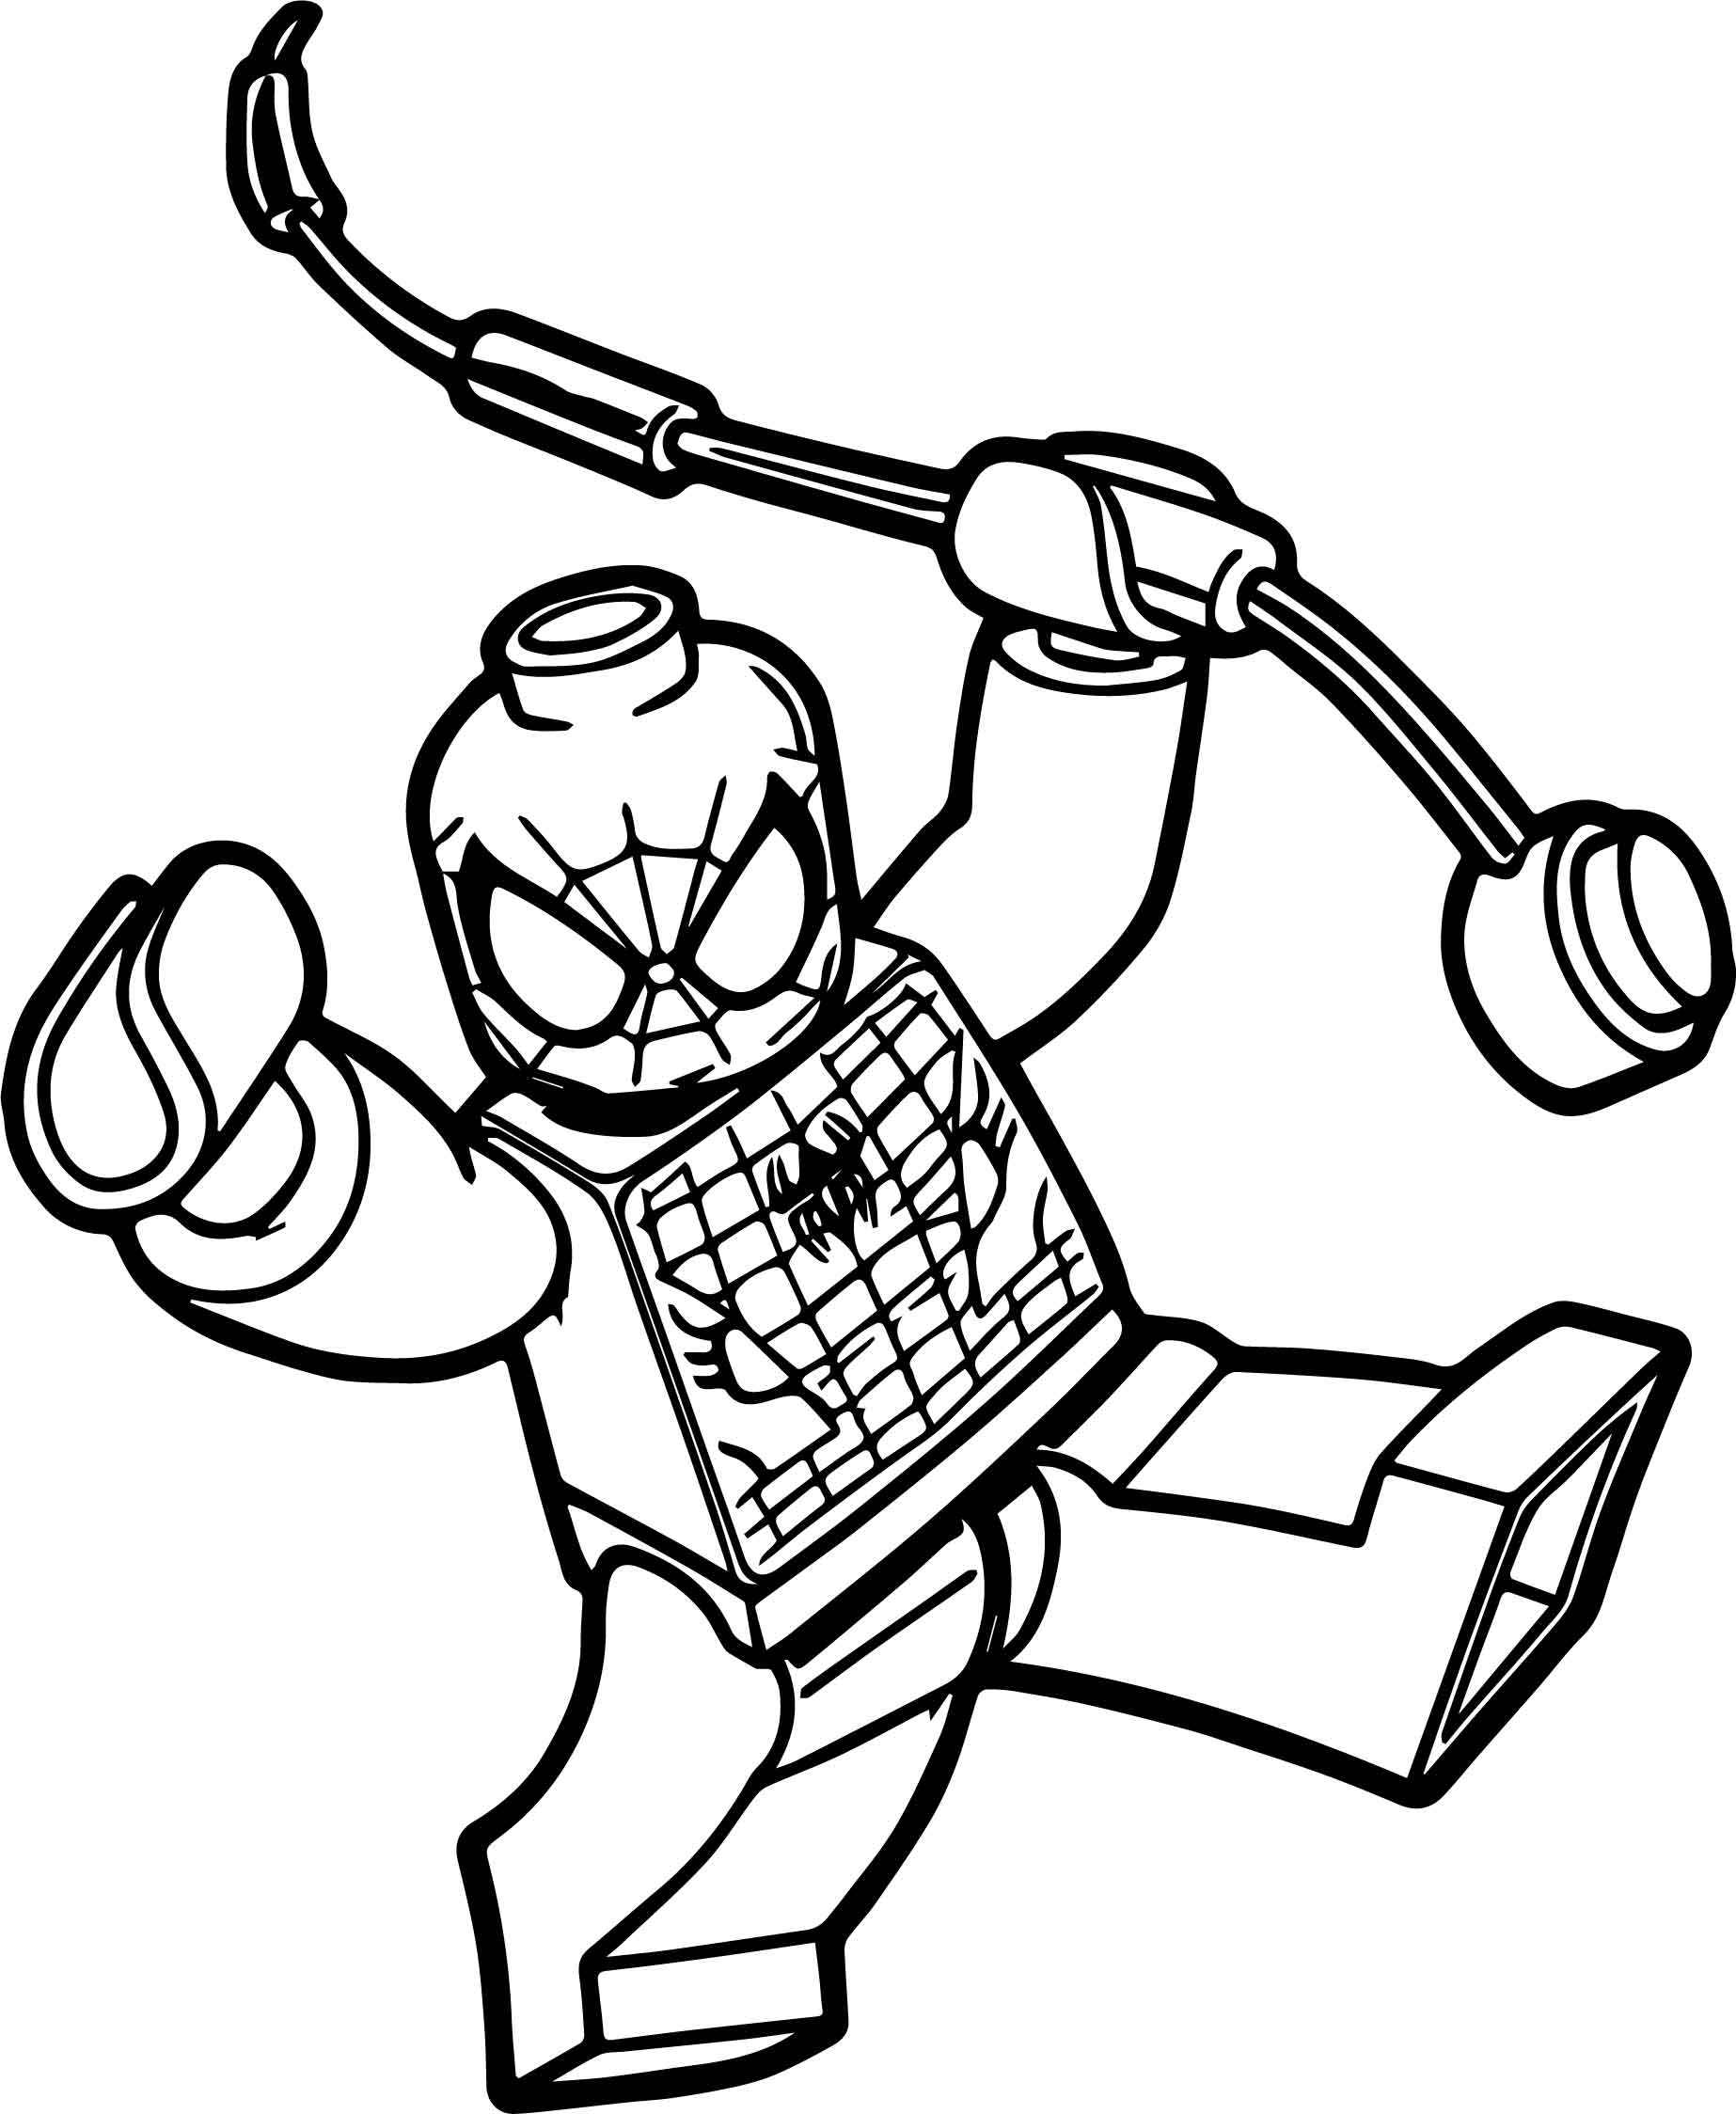 Box Spiderman Lego Spider Man Coloring Page ...